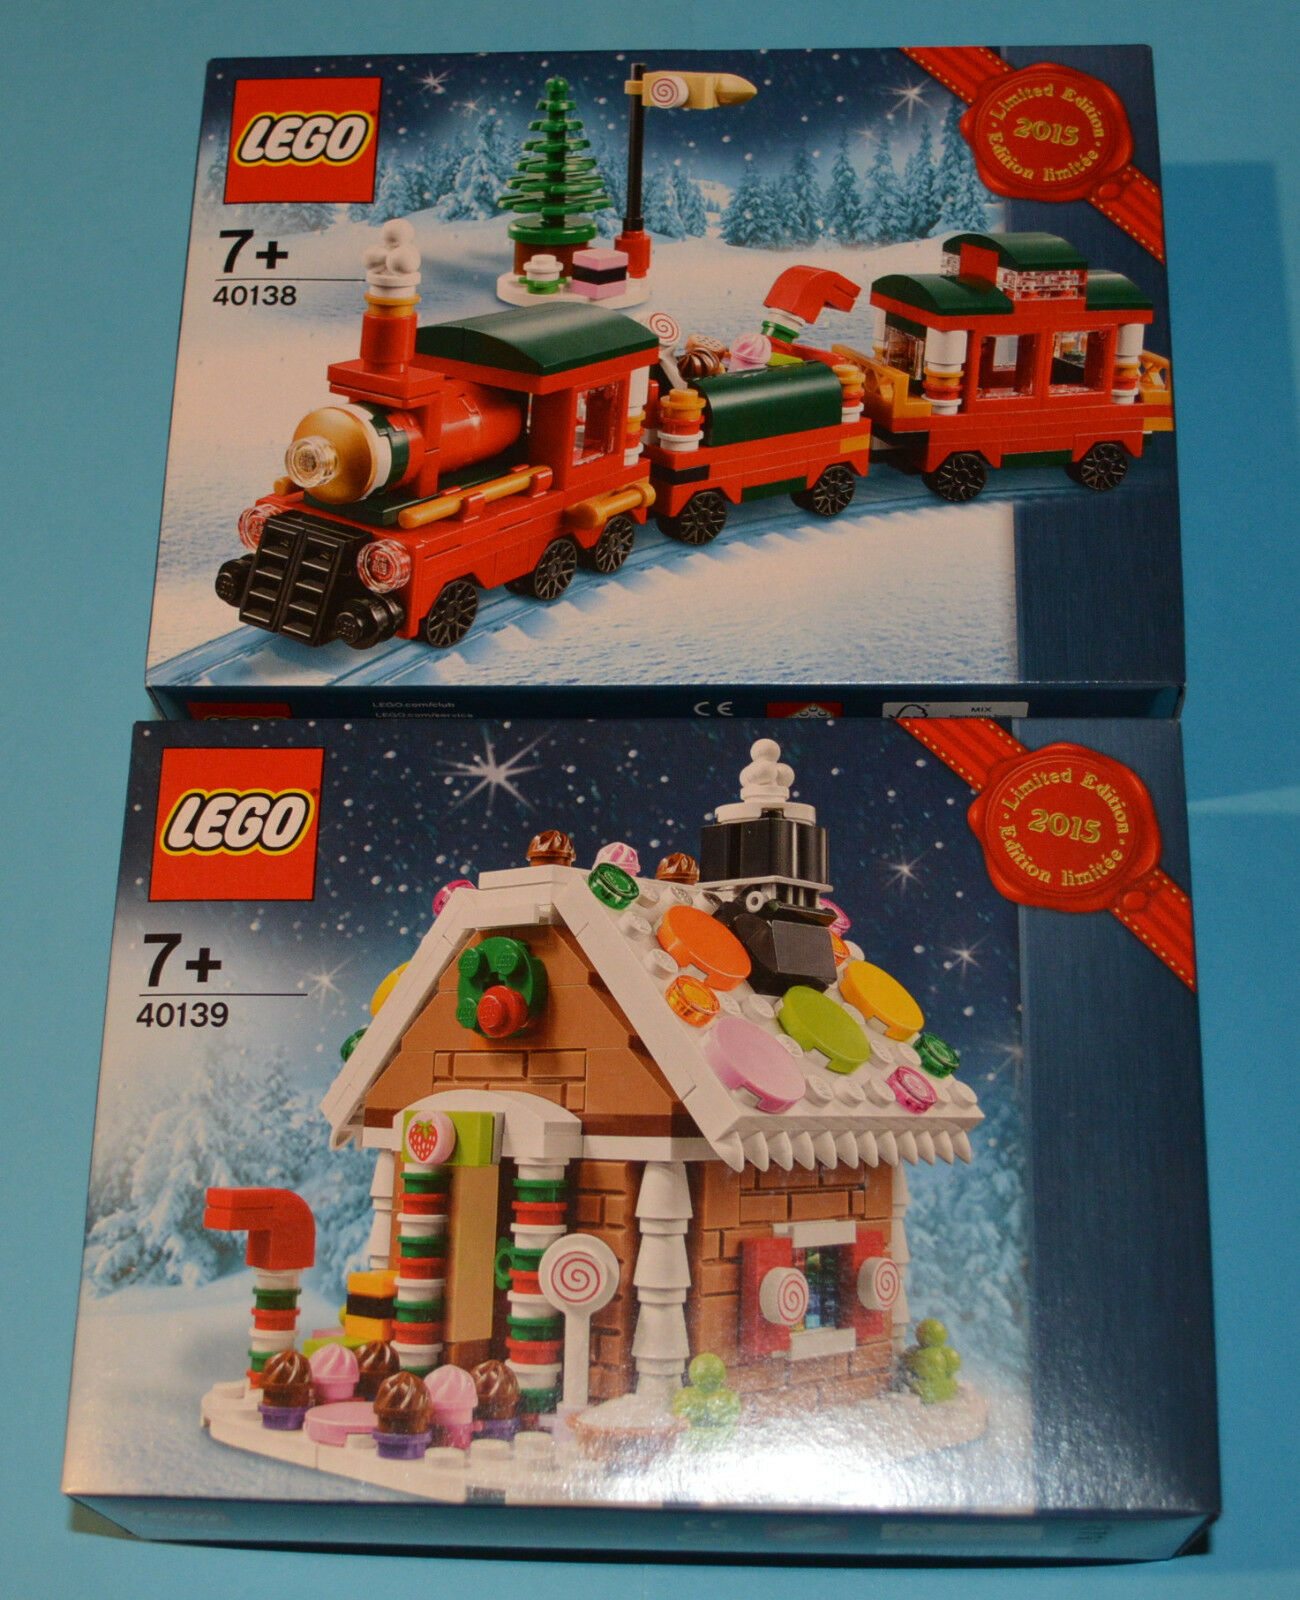 Lego 40138 Train & 40139 Gingerbread House Christmas Set Factory Sealed Box